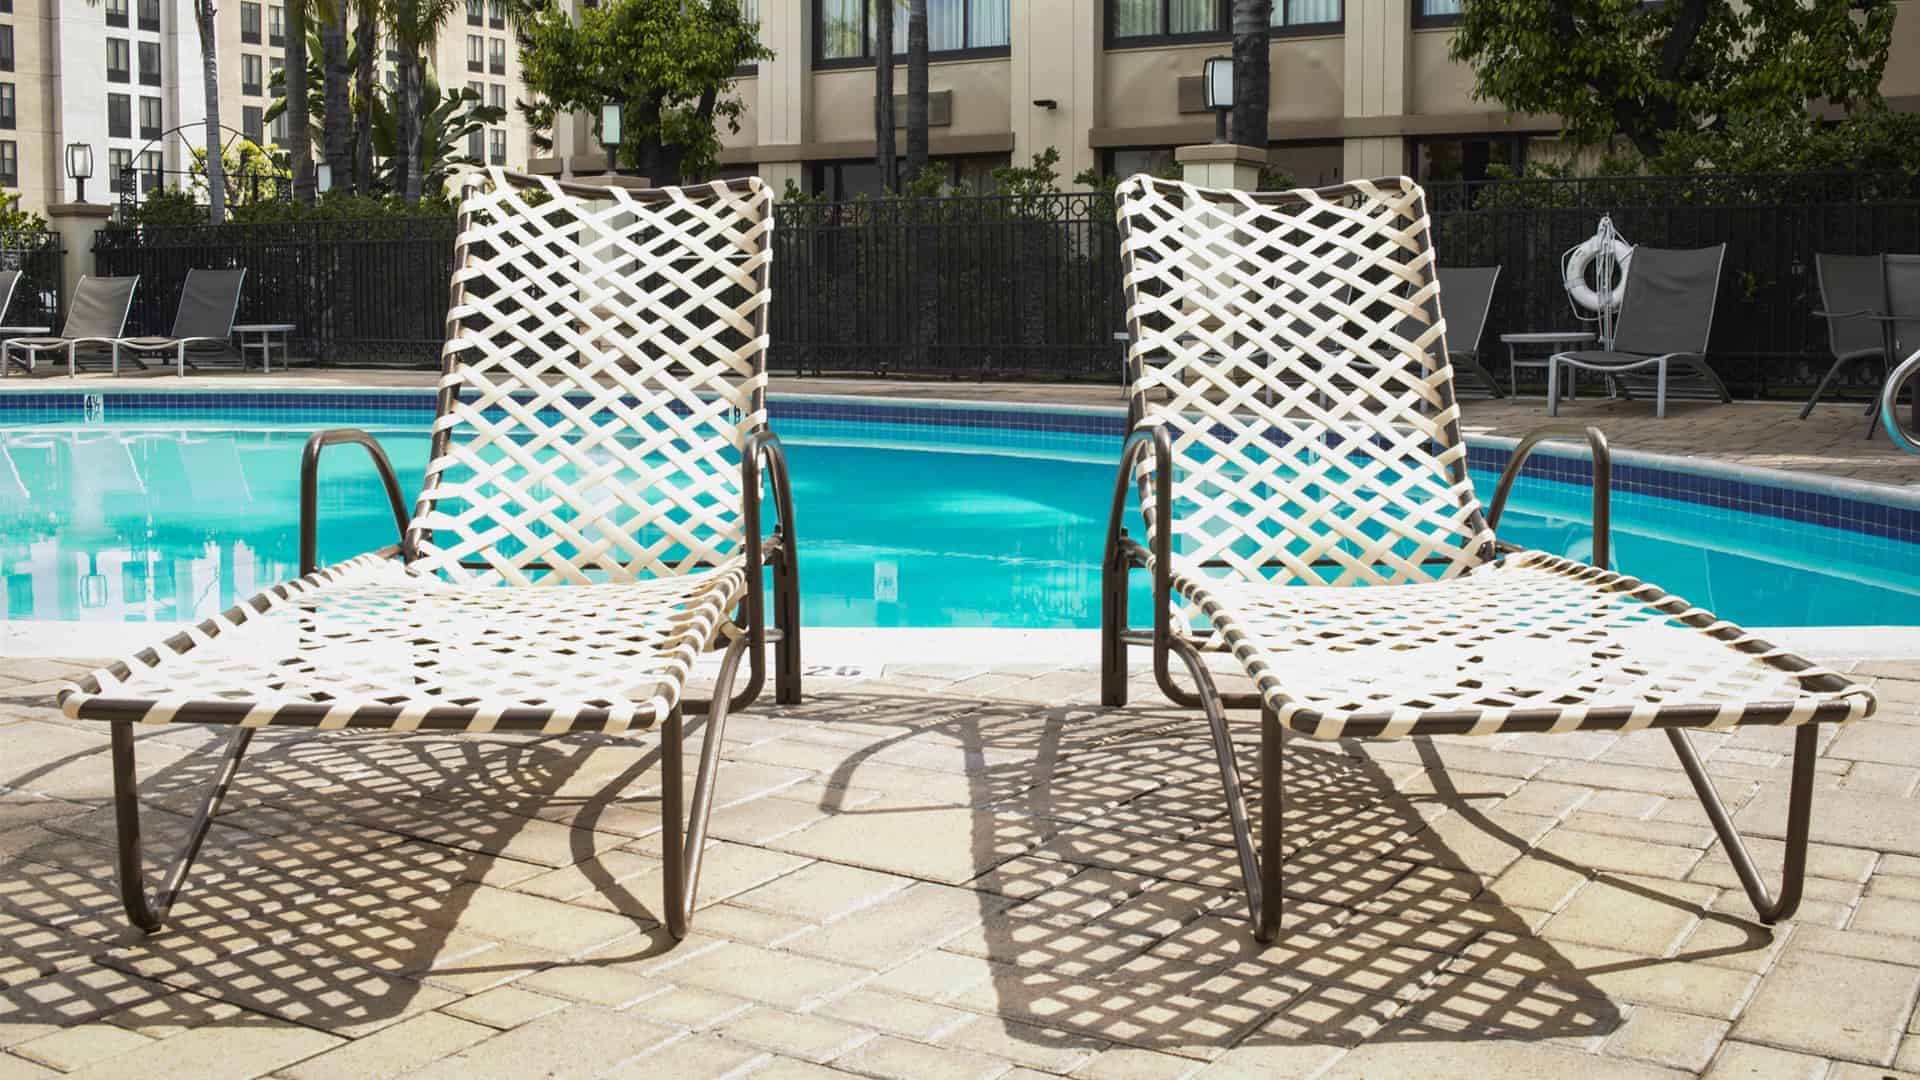 Two chaise lounges with vinyl strap in front of a hotel pool